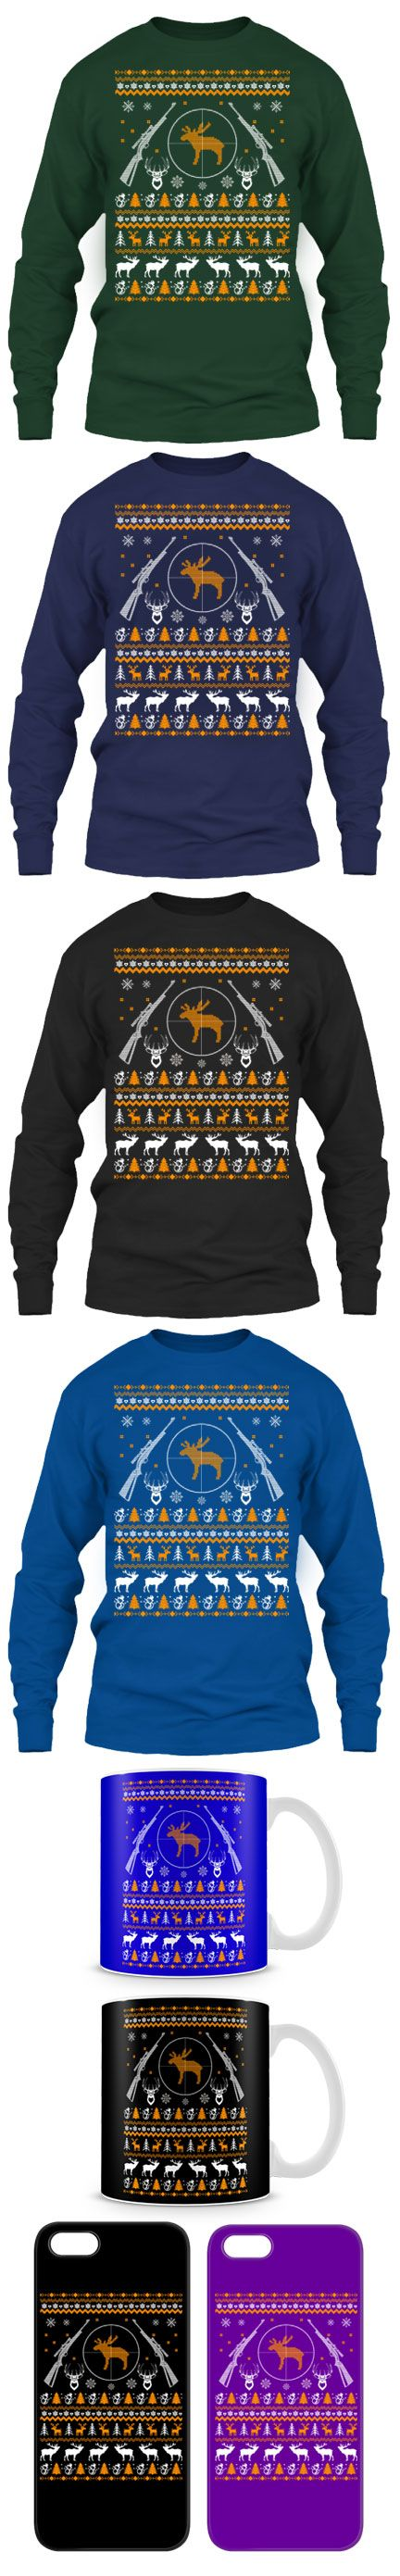 Best 25+ Mens christmas sweaters ideas on Pinterest | Mens ugly ...